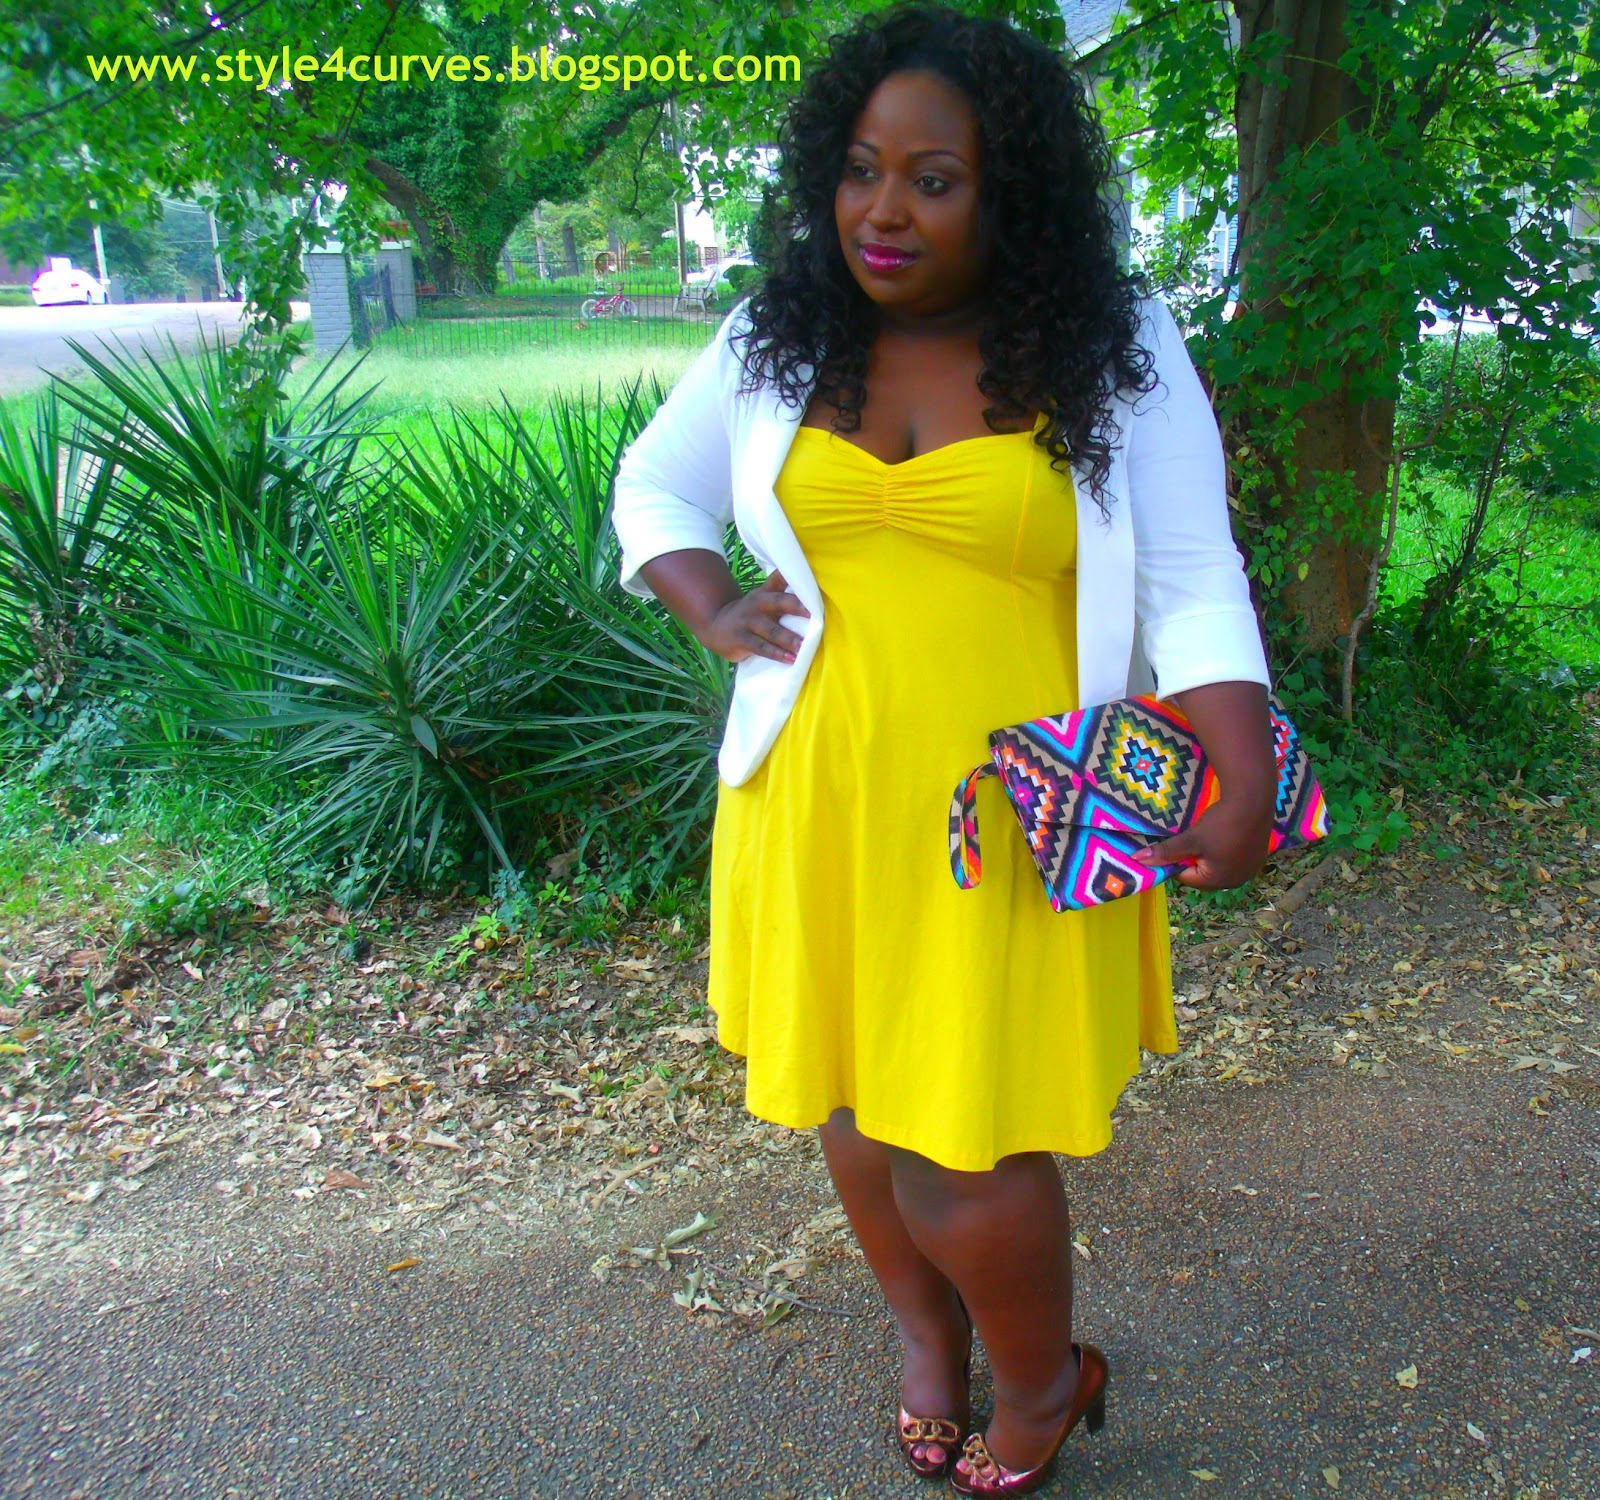 Yellow dress what colour accessories